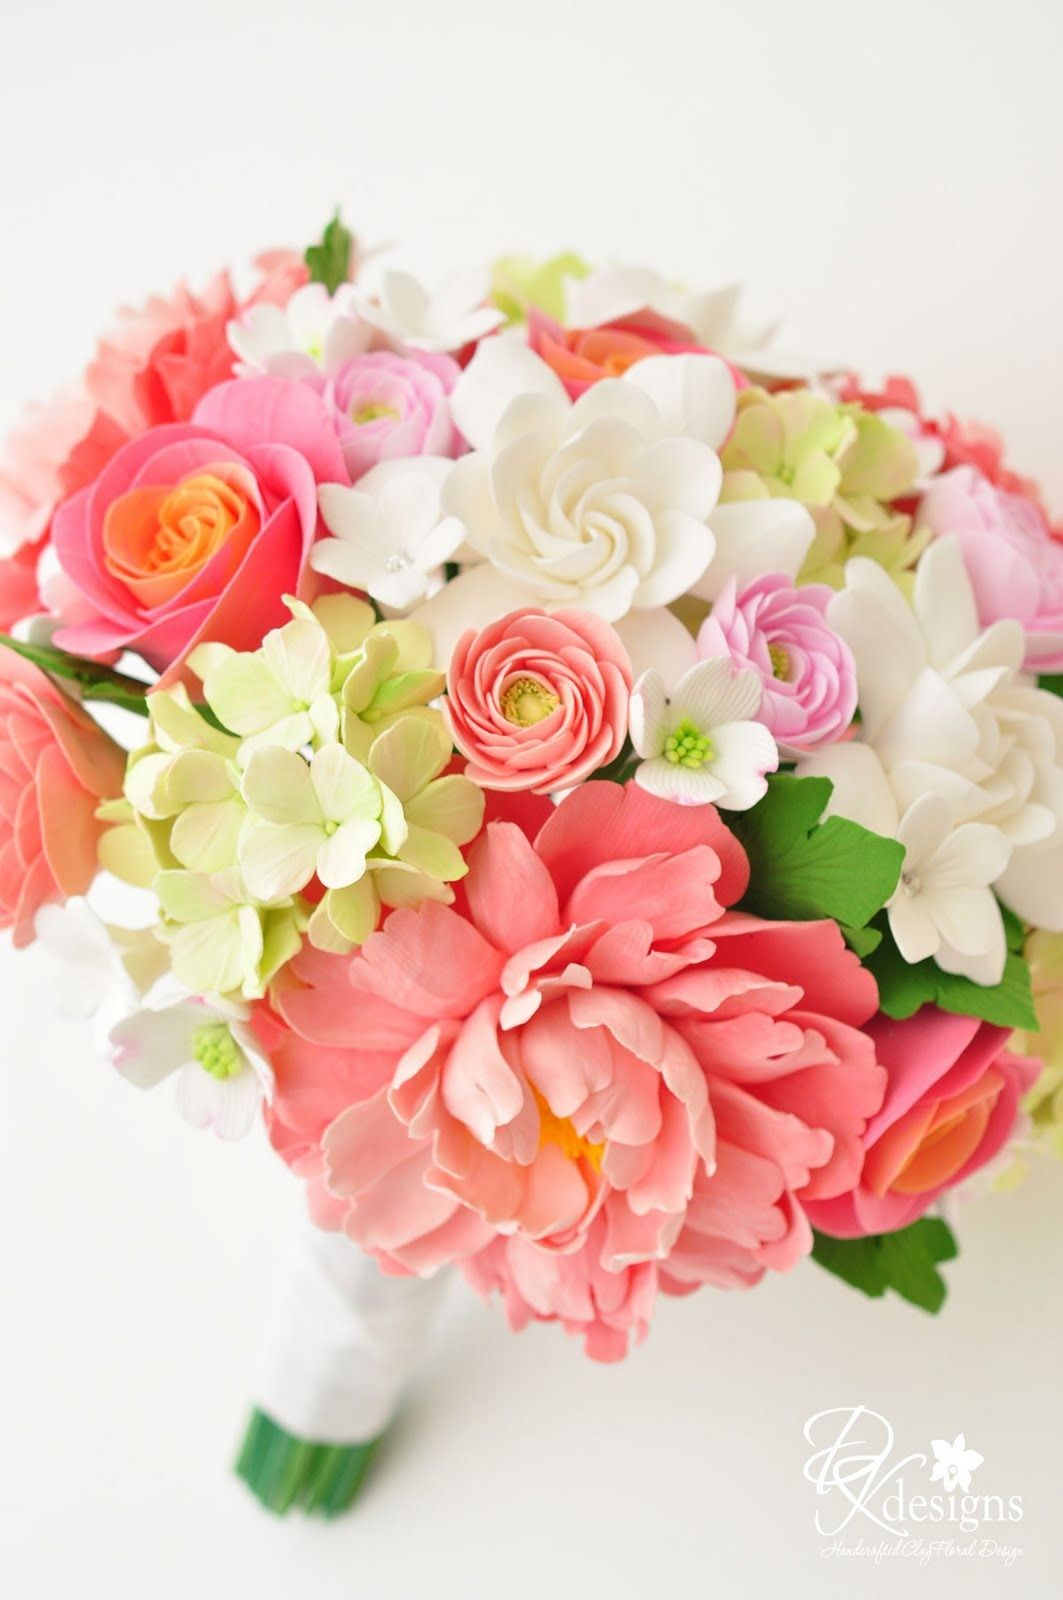 Teal And Coral Wedding Flowers Coral Pinks Greens And Whites